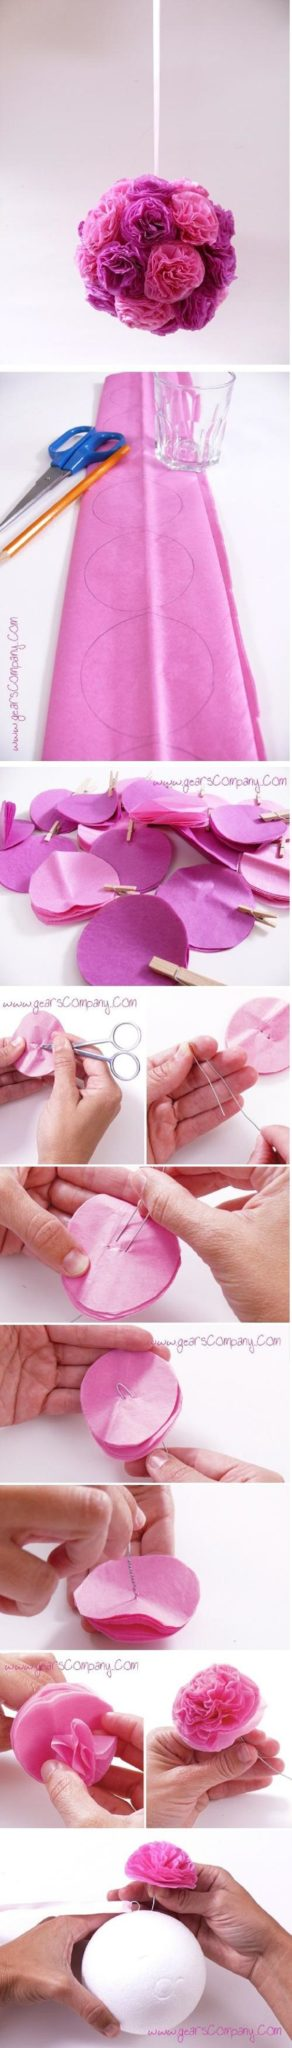 DIY Paper Flower Tutorial - 15 Whimsical DIY Party Decoration Tutorials…: